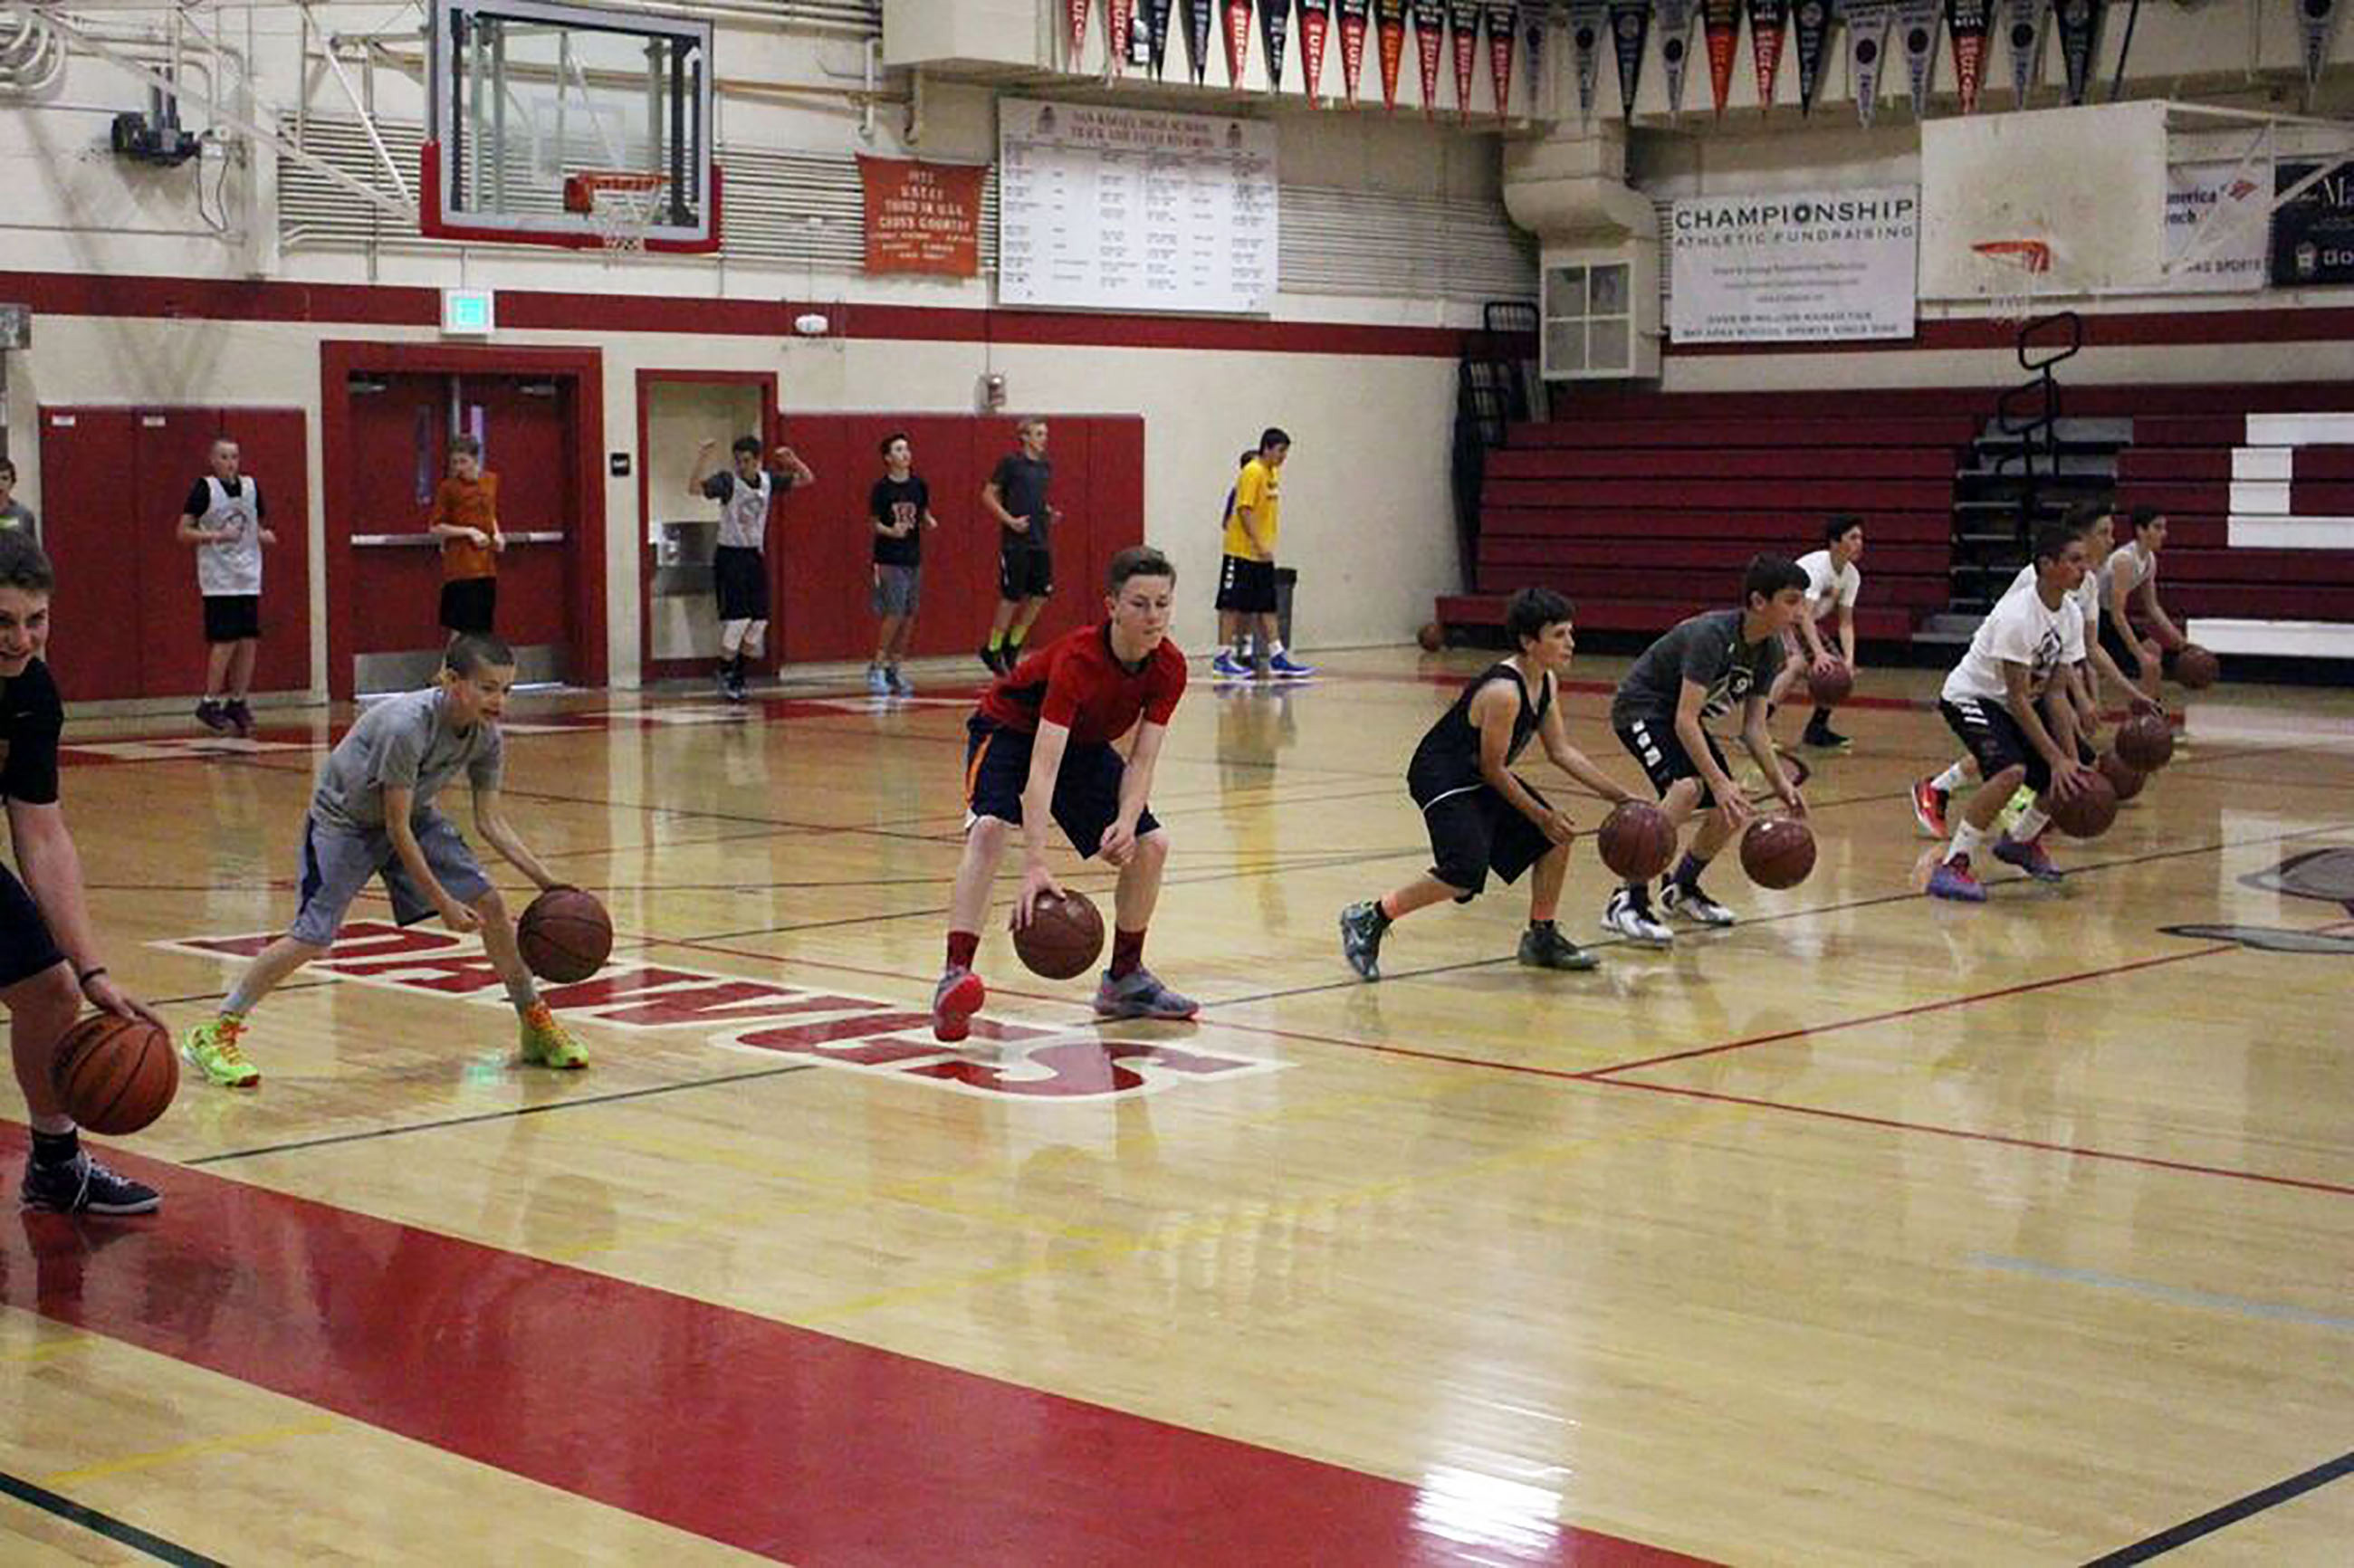 Home - North Bay Basketball Academy